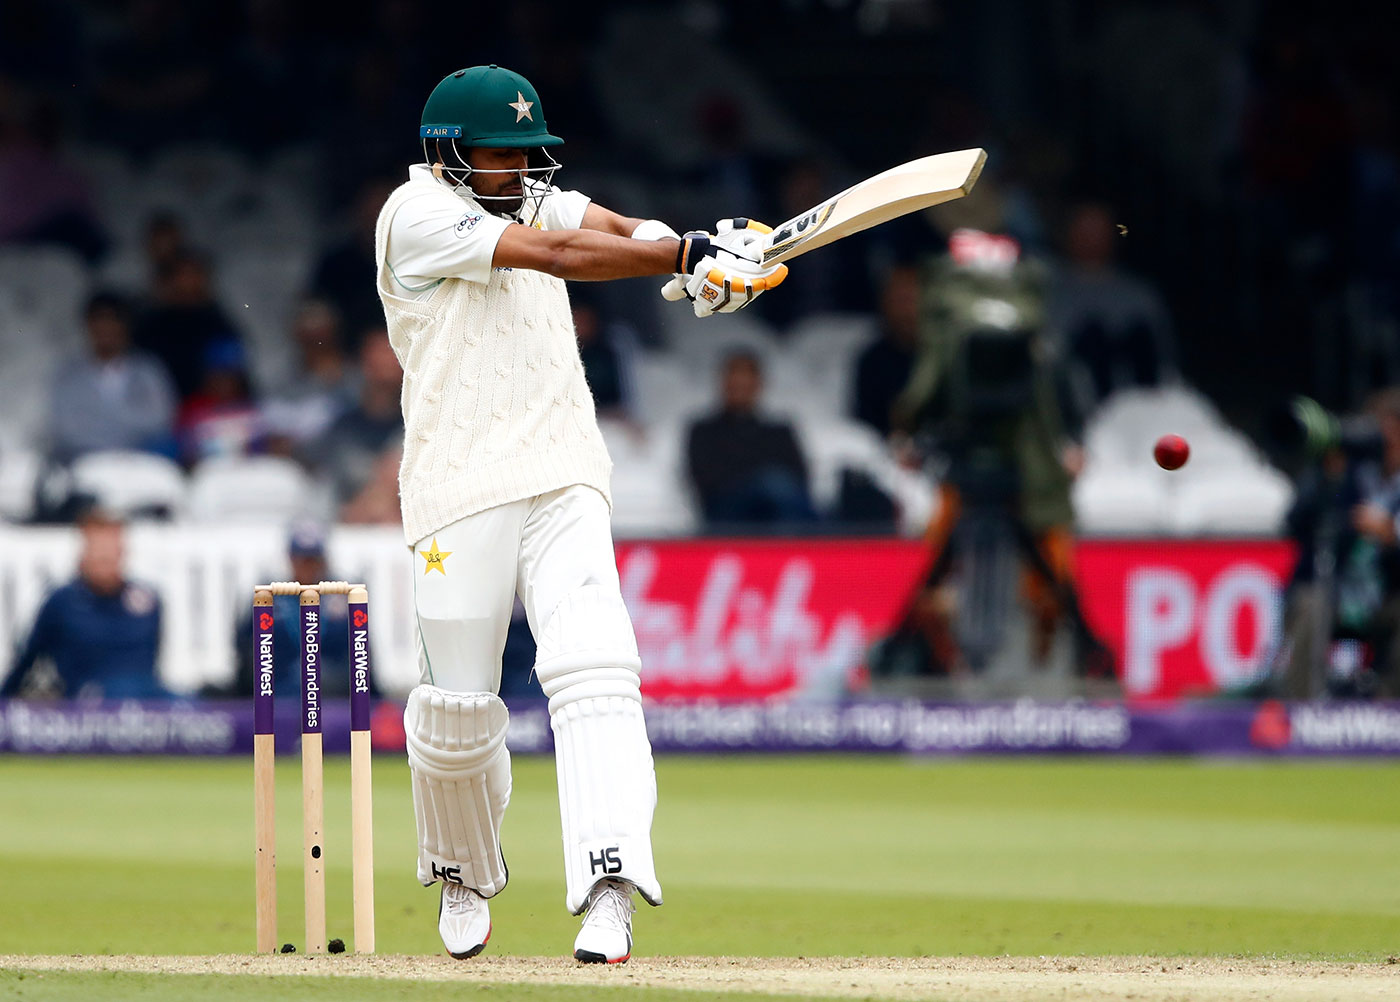 Pakistan look to capitalize on an impressive 166 lead after a solid batting display against England on Day 2 at Lord's